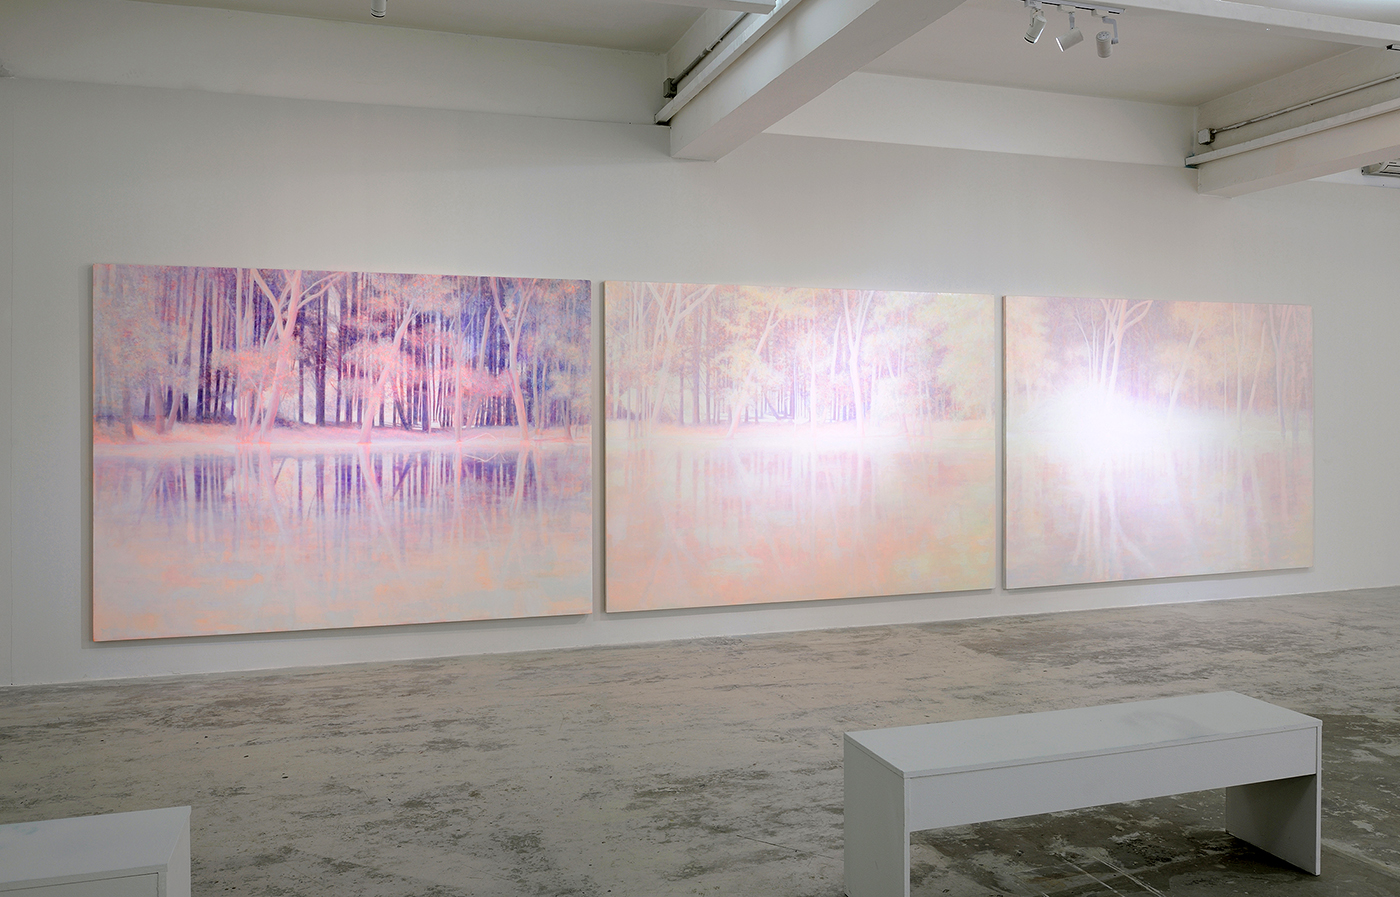 Daniele Genadry - Purple Glade, White Clearing, Pink Gleam, 2018